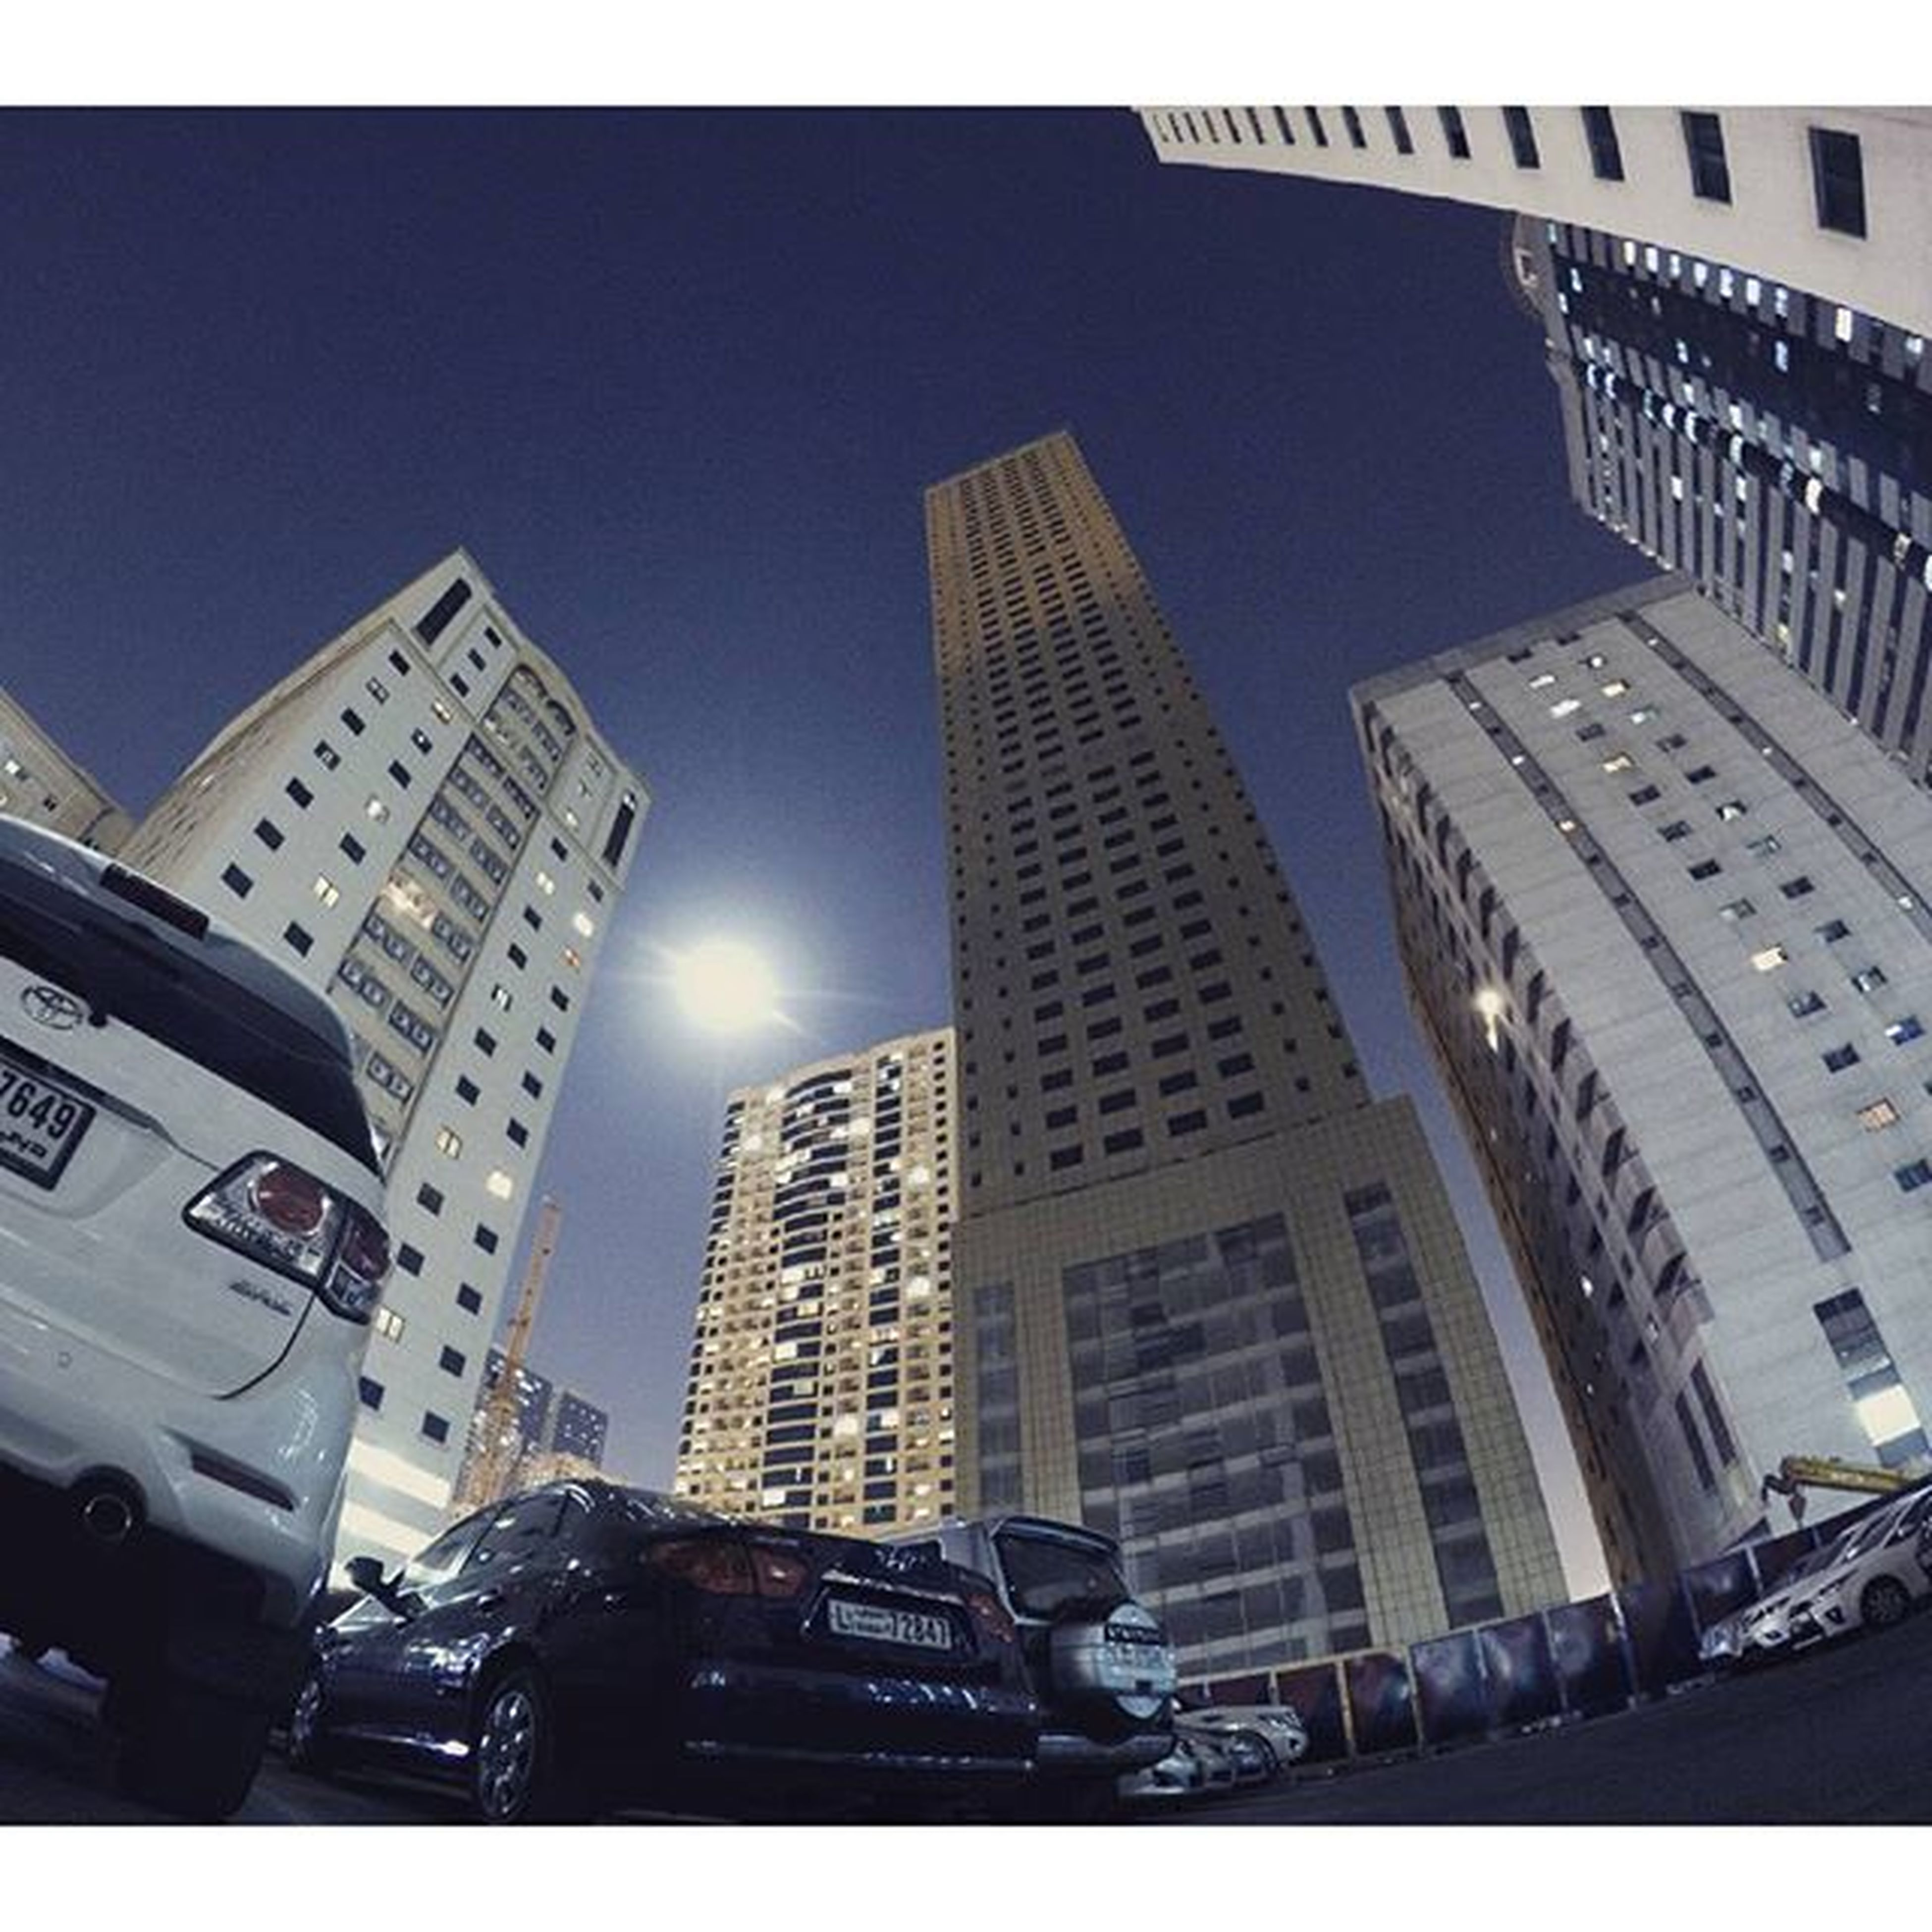 building exterior, architecture, city, built structure, skyscraper, car, transfer print, office building, building, city life, tall - high, street, transportation, land vehicle, auto post production filter, city street, modern, tower, low angle view, mode of transport